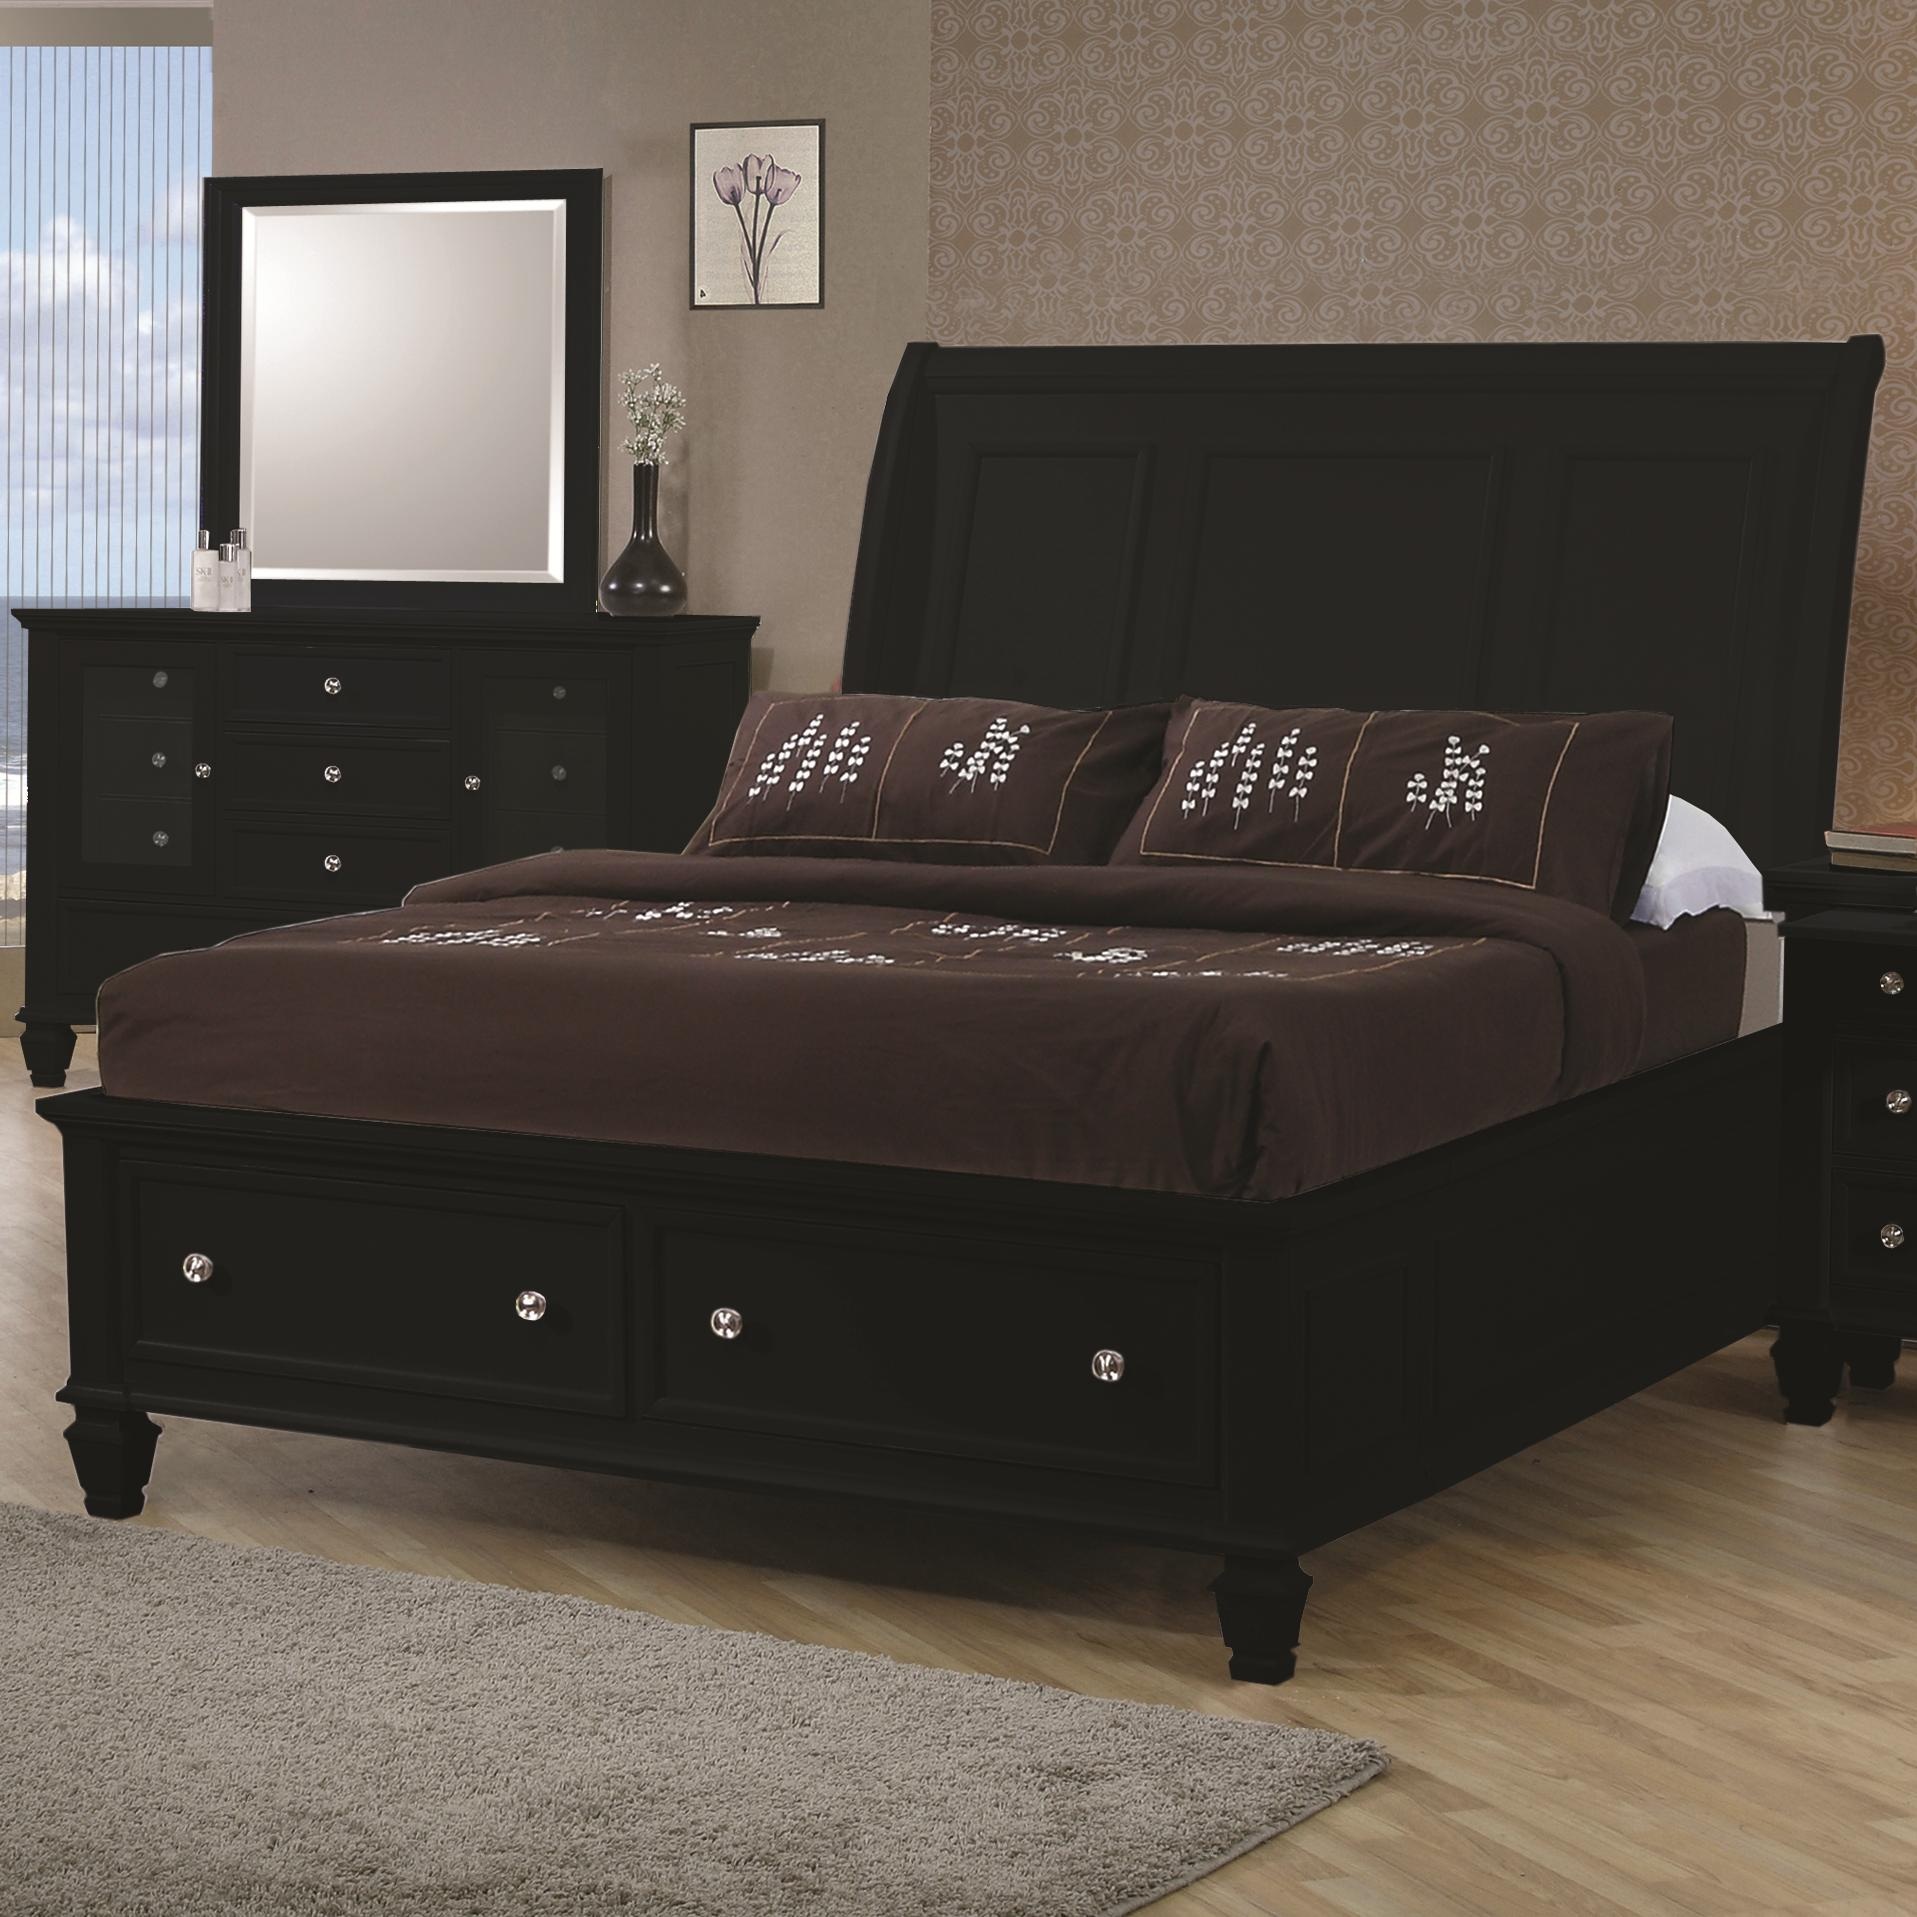 Sandy Beach Queen Sleigh Bed  by Coaster at Dream Home Interiors